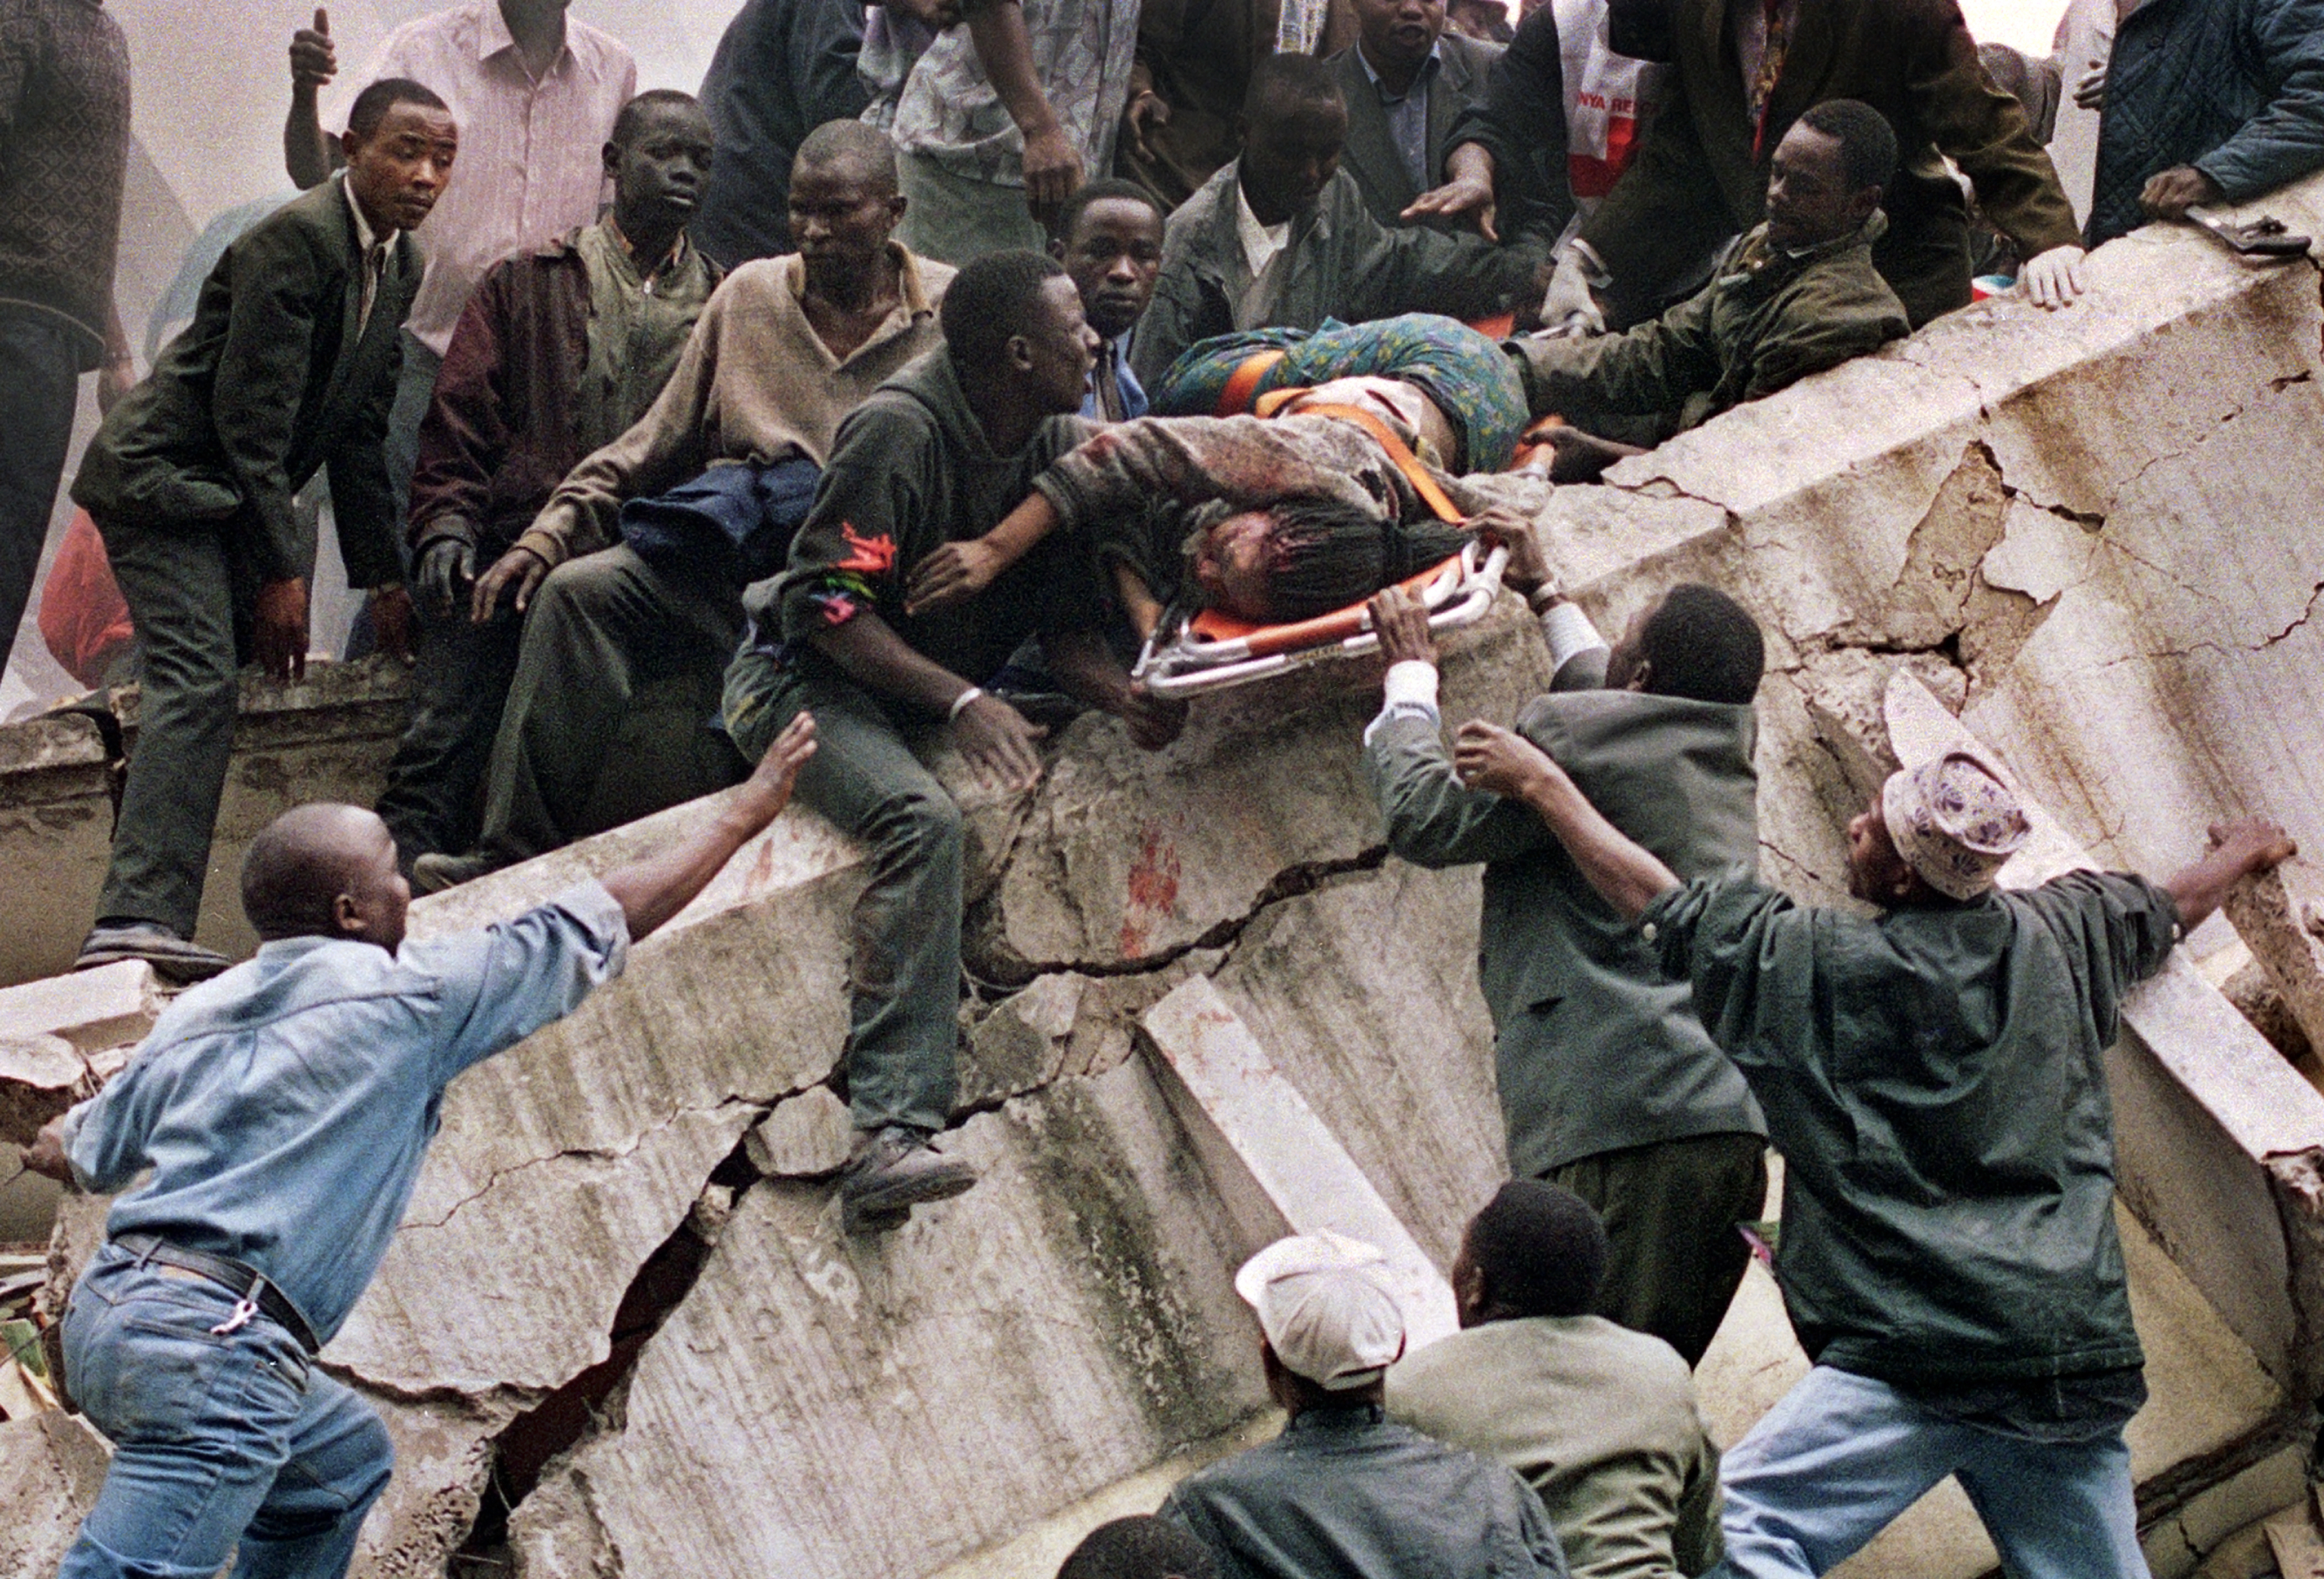 Rescue workers carry Susan Francisca Murianki, a U.S. Embassy office worker, from the rubble of a collapsed building in next to the embassy in Nairobi on Aug. 7, 1998 after terrorist bombs exploded minutes apart outside the U.S. embassies in the Kenyan and Tanzanian capitals. In Nairobi alone more than 200 people were killed and about 4,000 wounded. (AP Photo/Khalil Senosi)